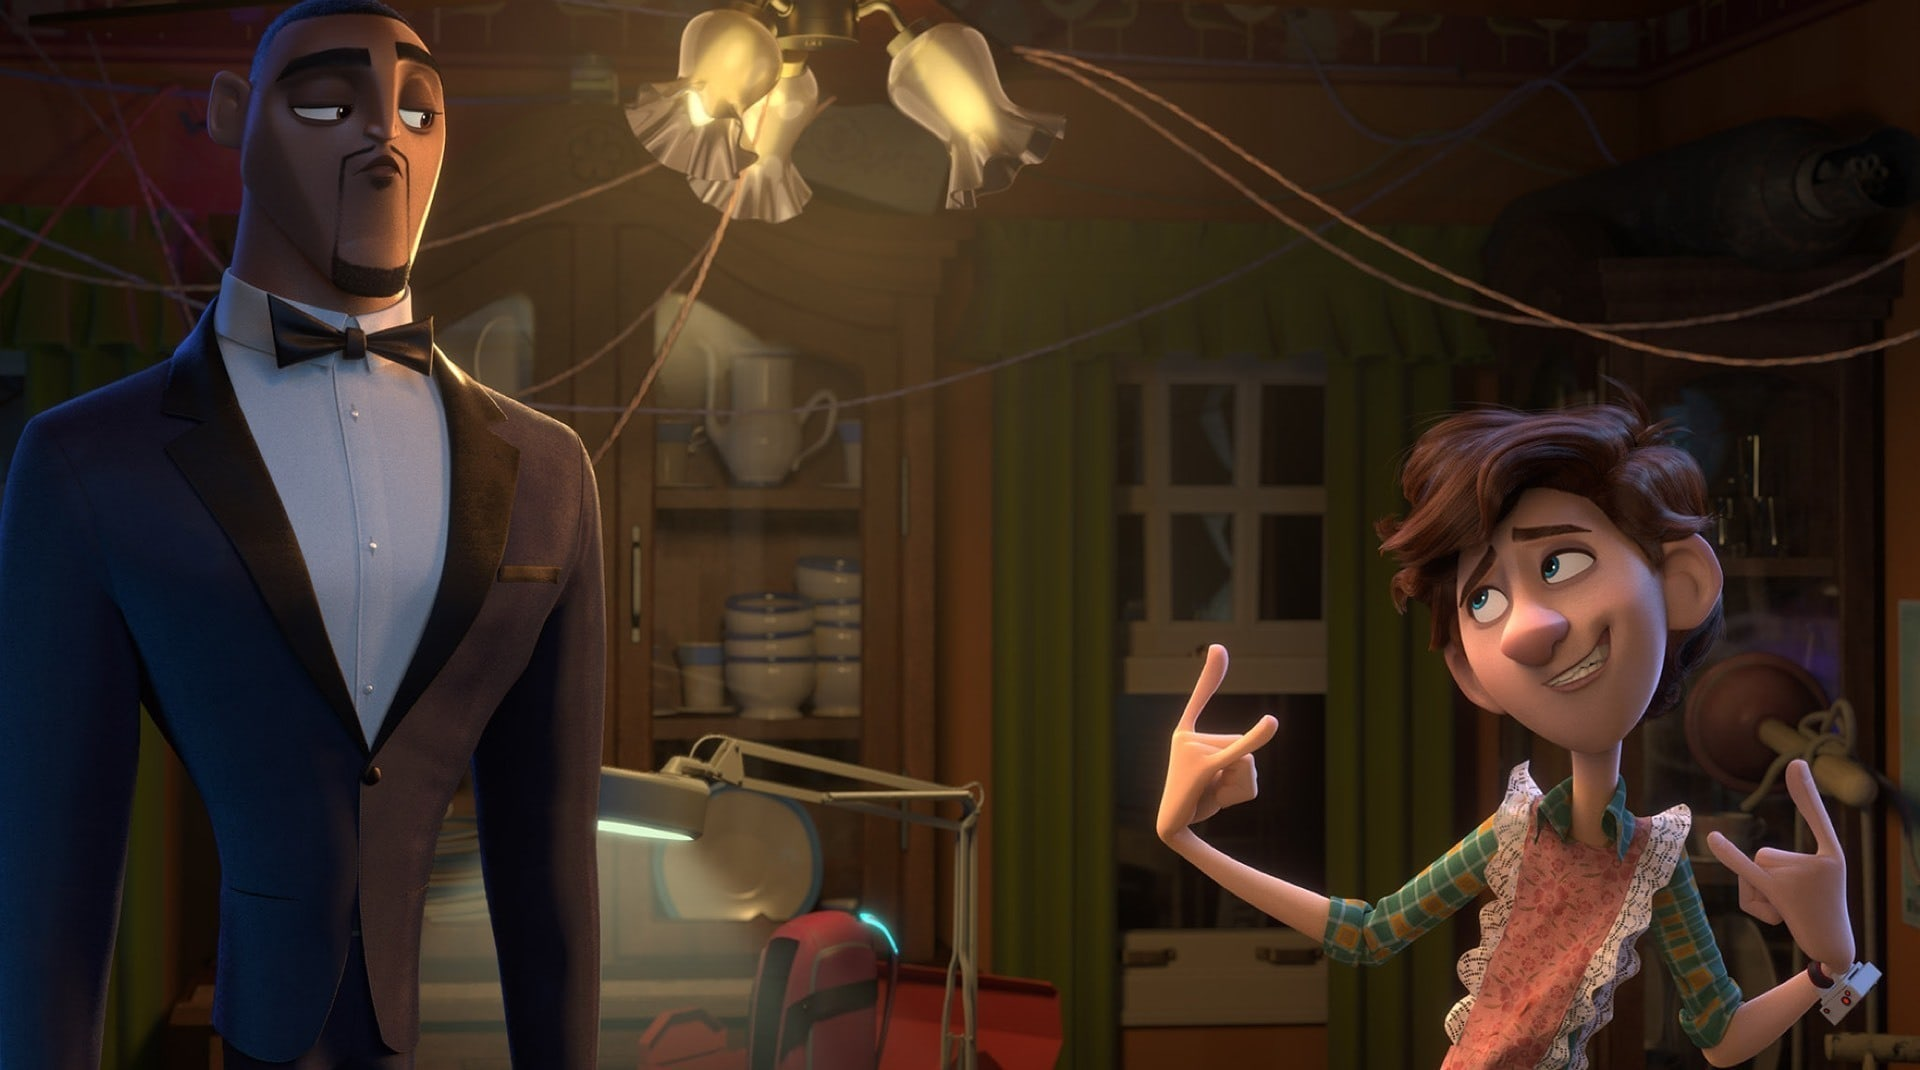 A still from Spies in Disguise